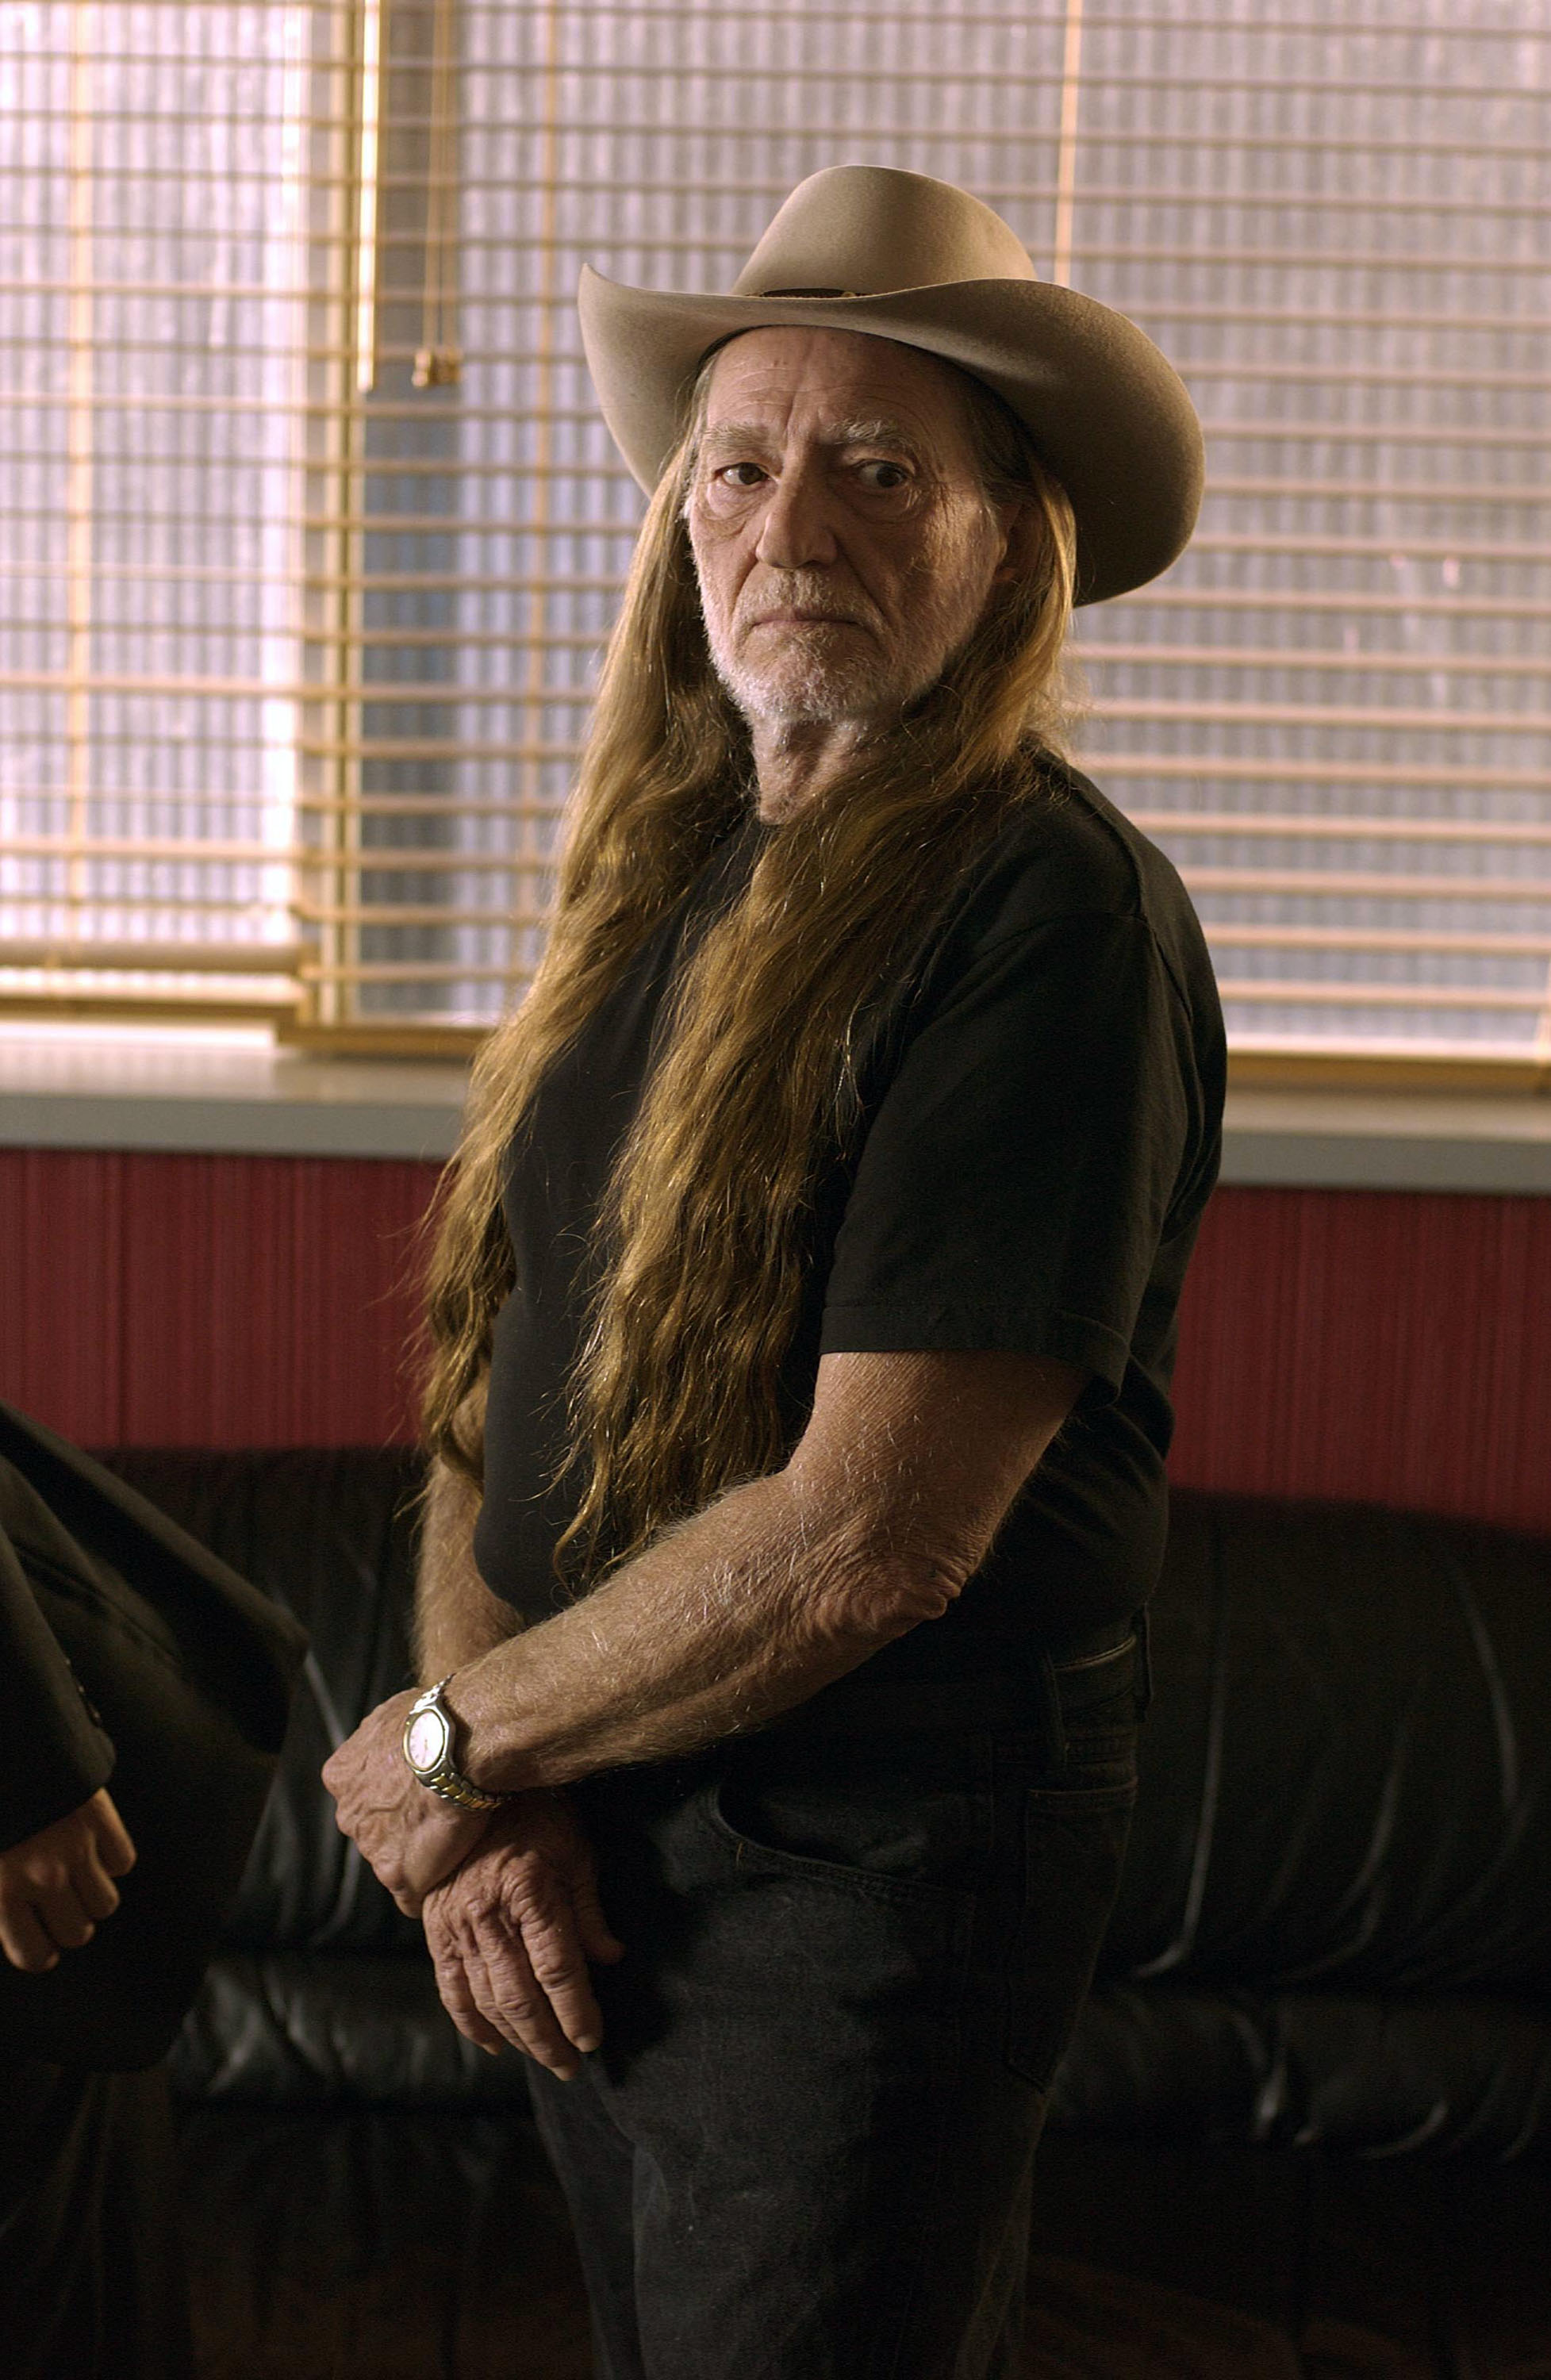 Willie Nelson on Texas Border Children: 'We've Got to Help Those Kids'